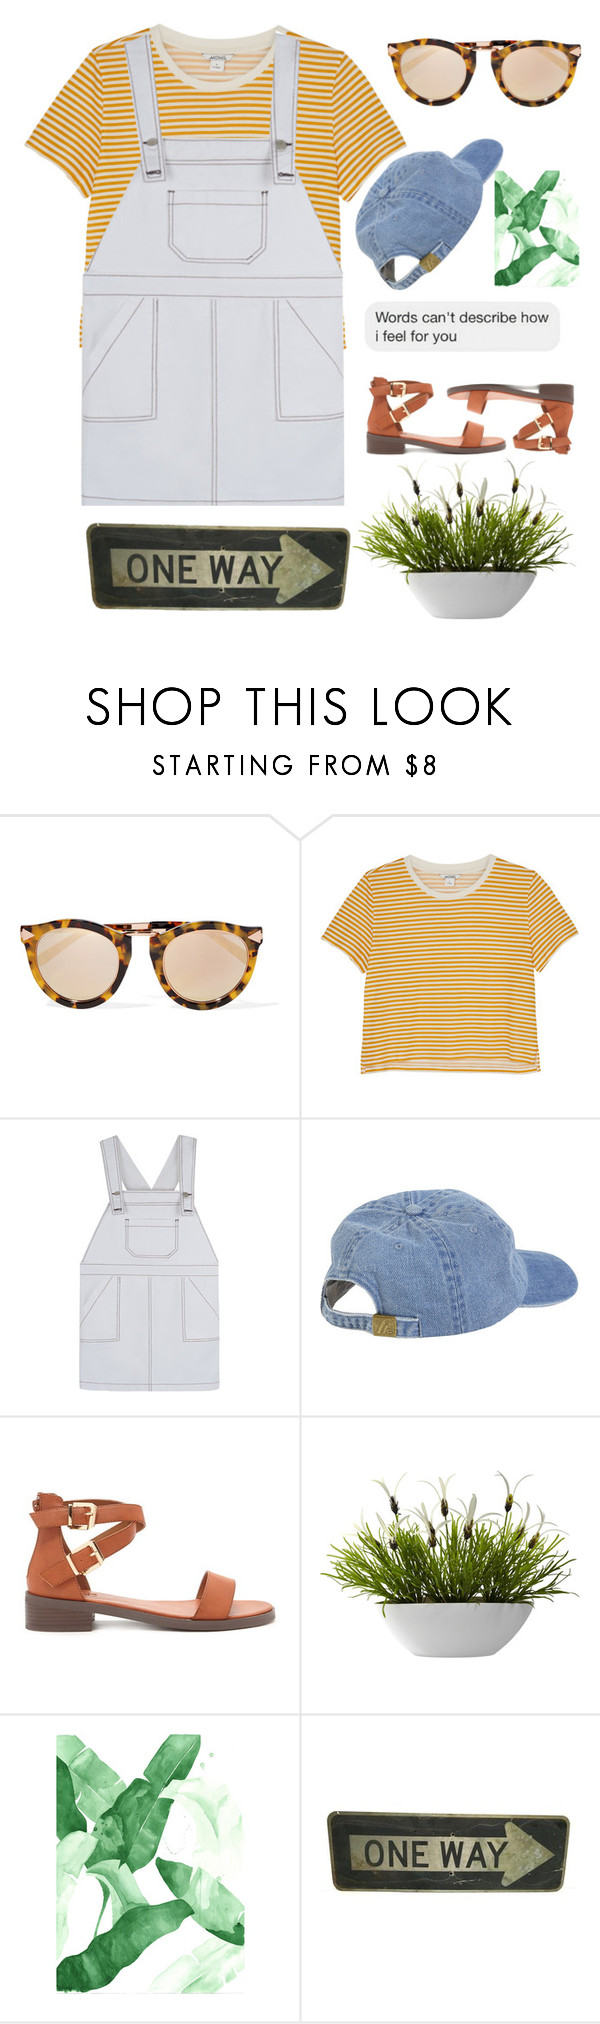 """""""I Finally Came to Love You."""" by anexushill ❤ liked on Polyvore featuring Karen Walker, Monki and Forever 21"""